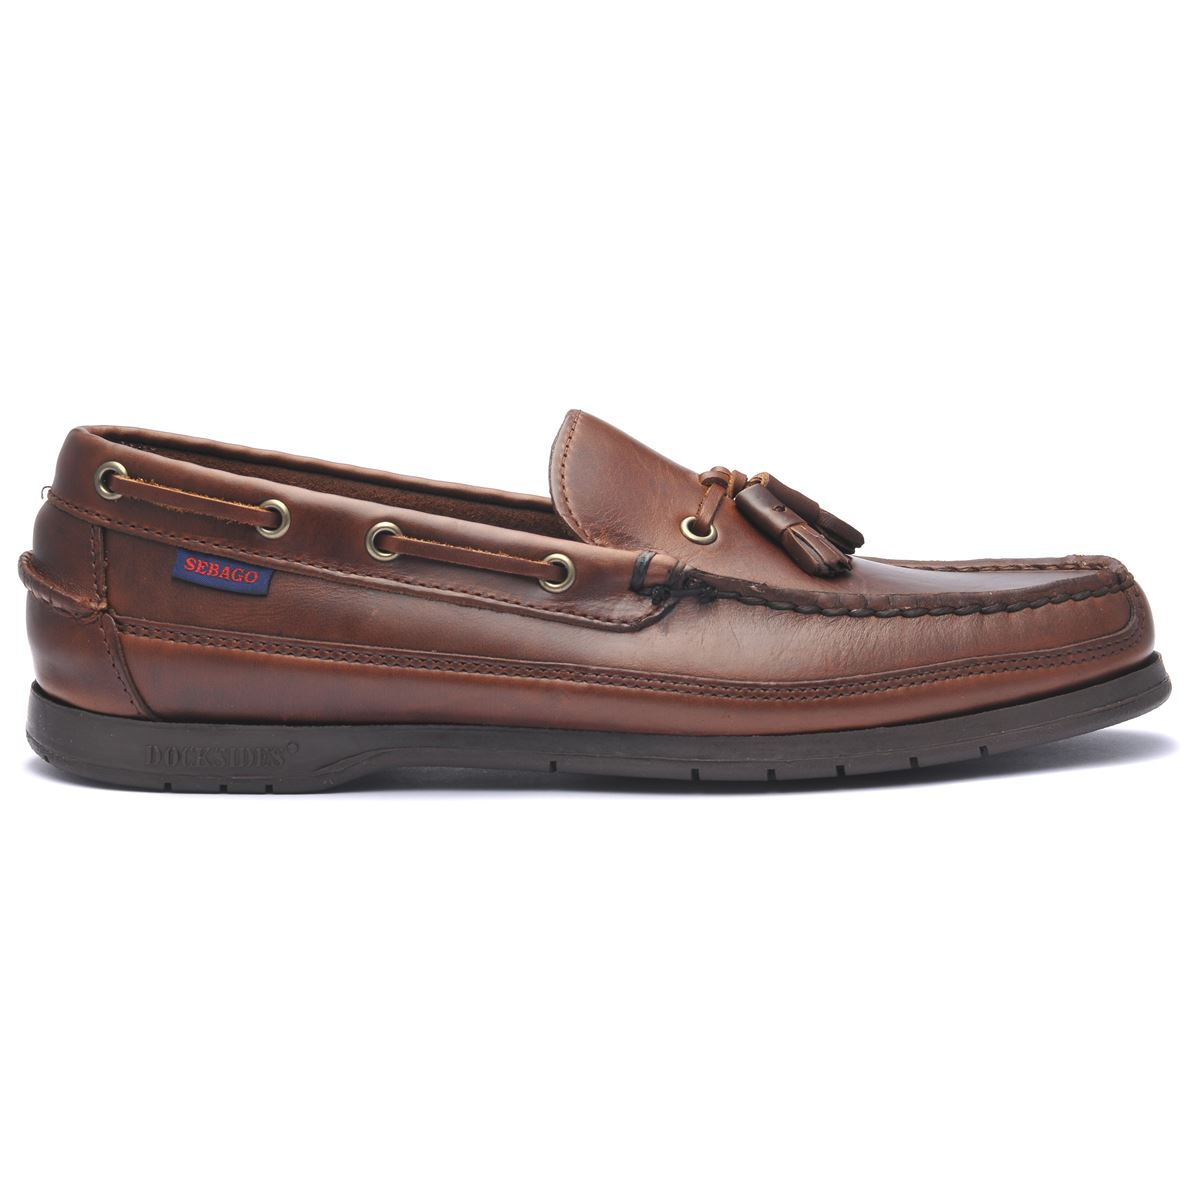 Sebago MOC KETCH Man Yachting sailing Moccasin